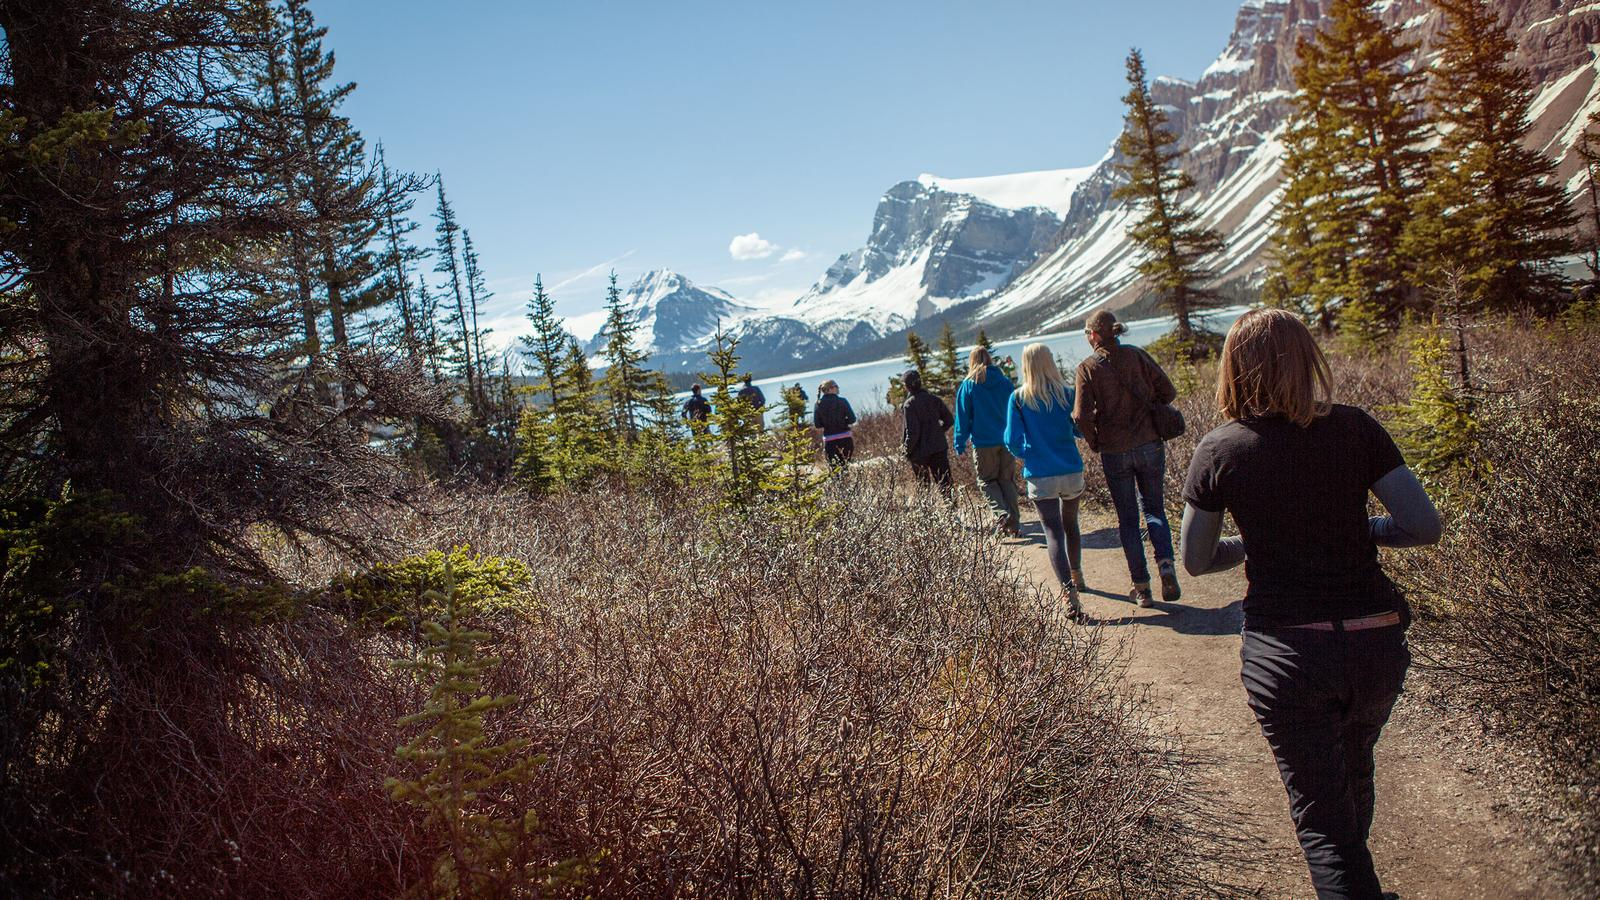 ... going for a stroll in the beautiful backfrop of the Alberta icefields